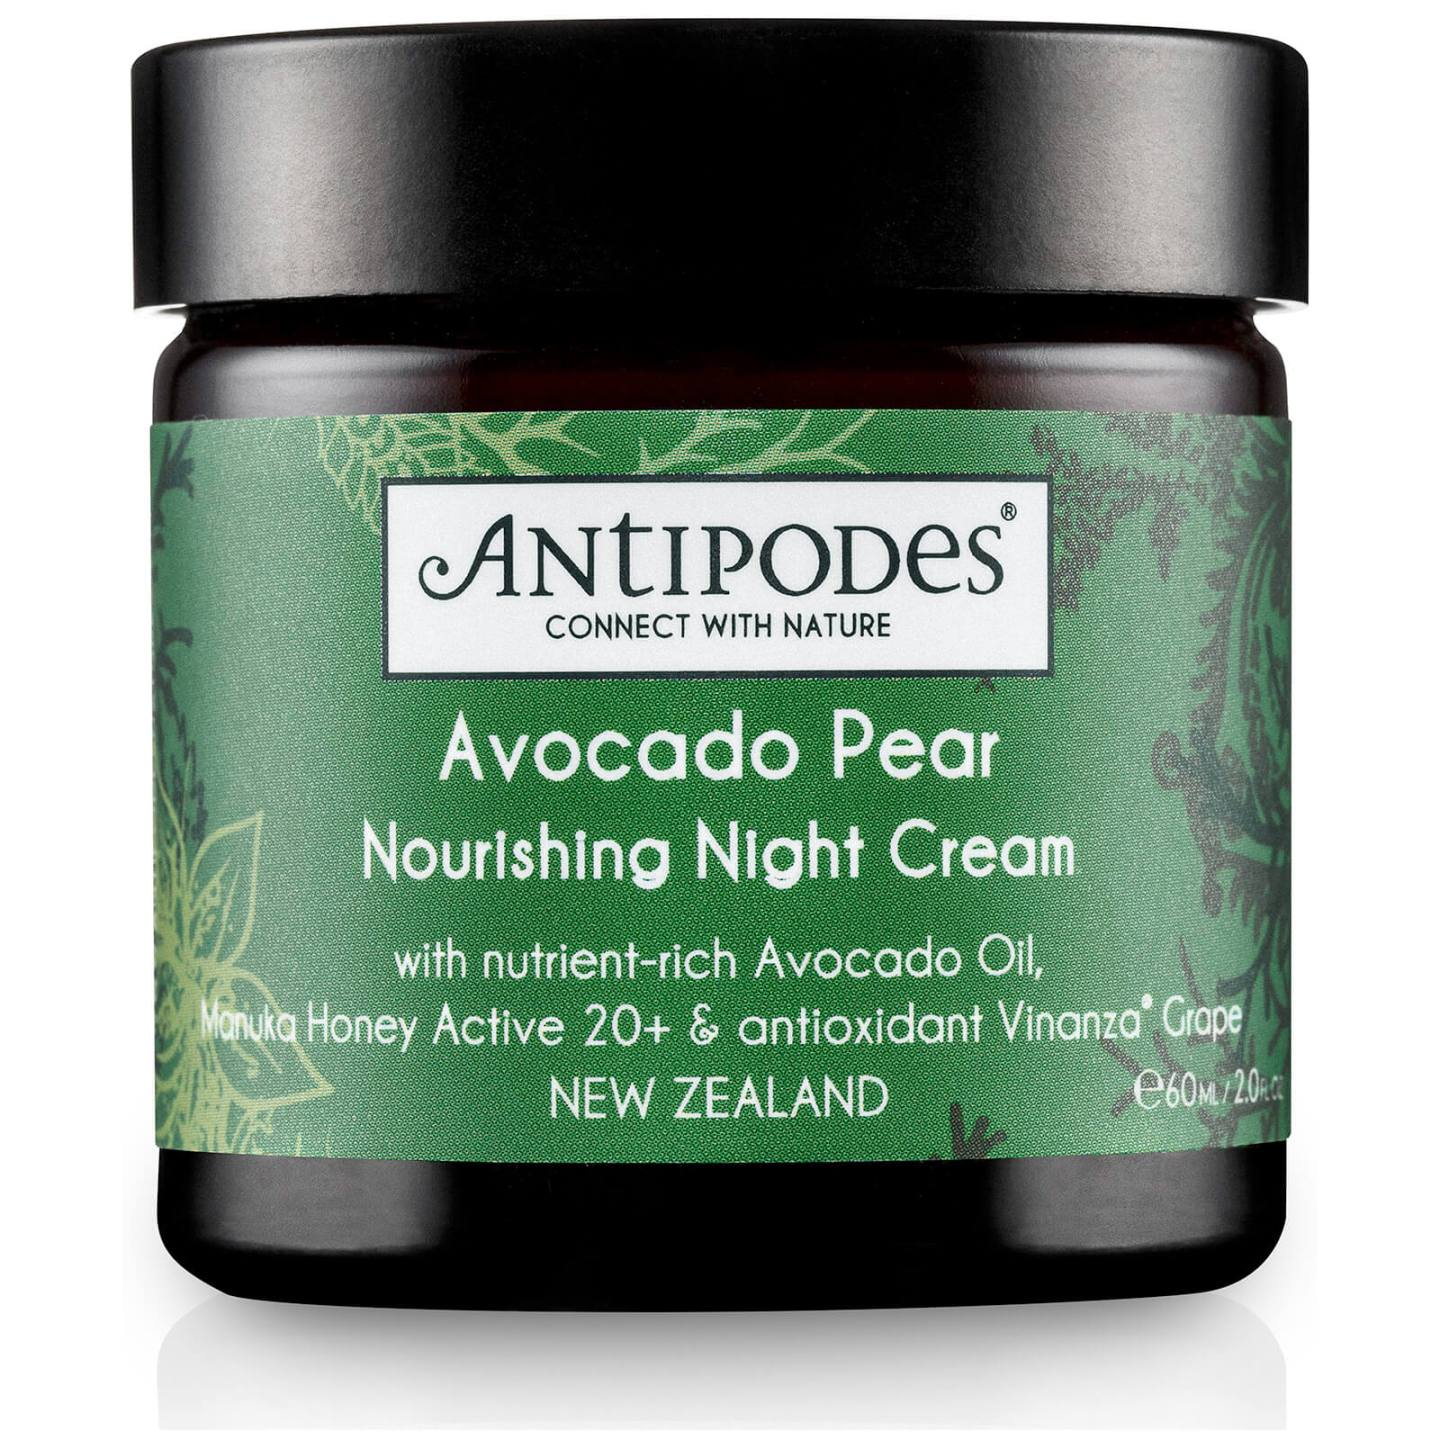 Antipodes Avocado Pear Night Cream